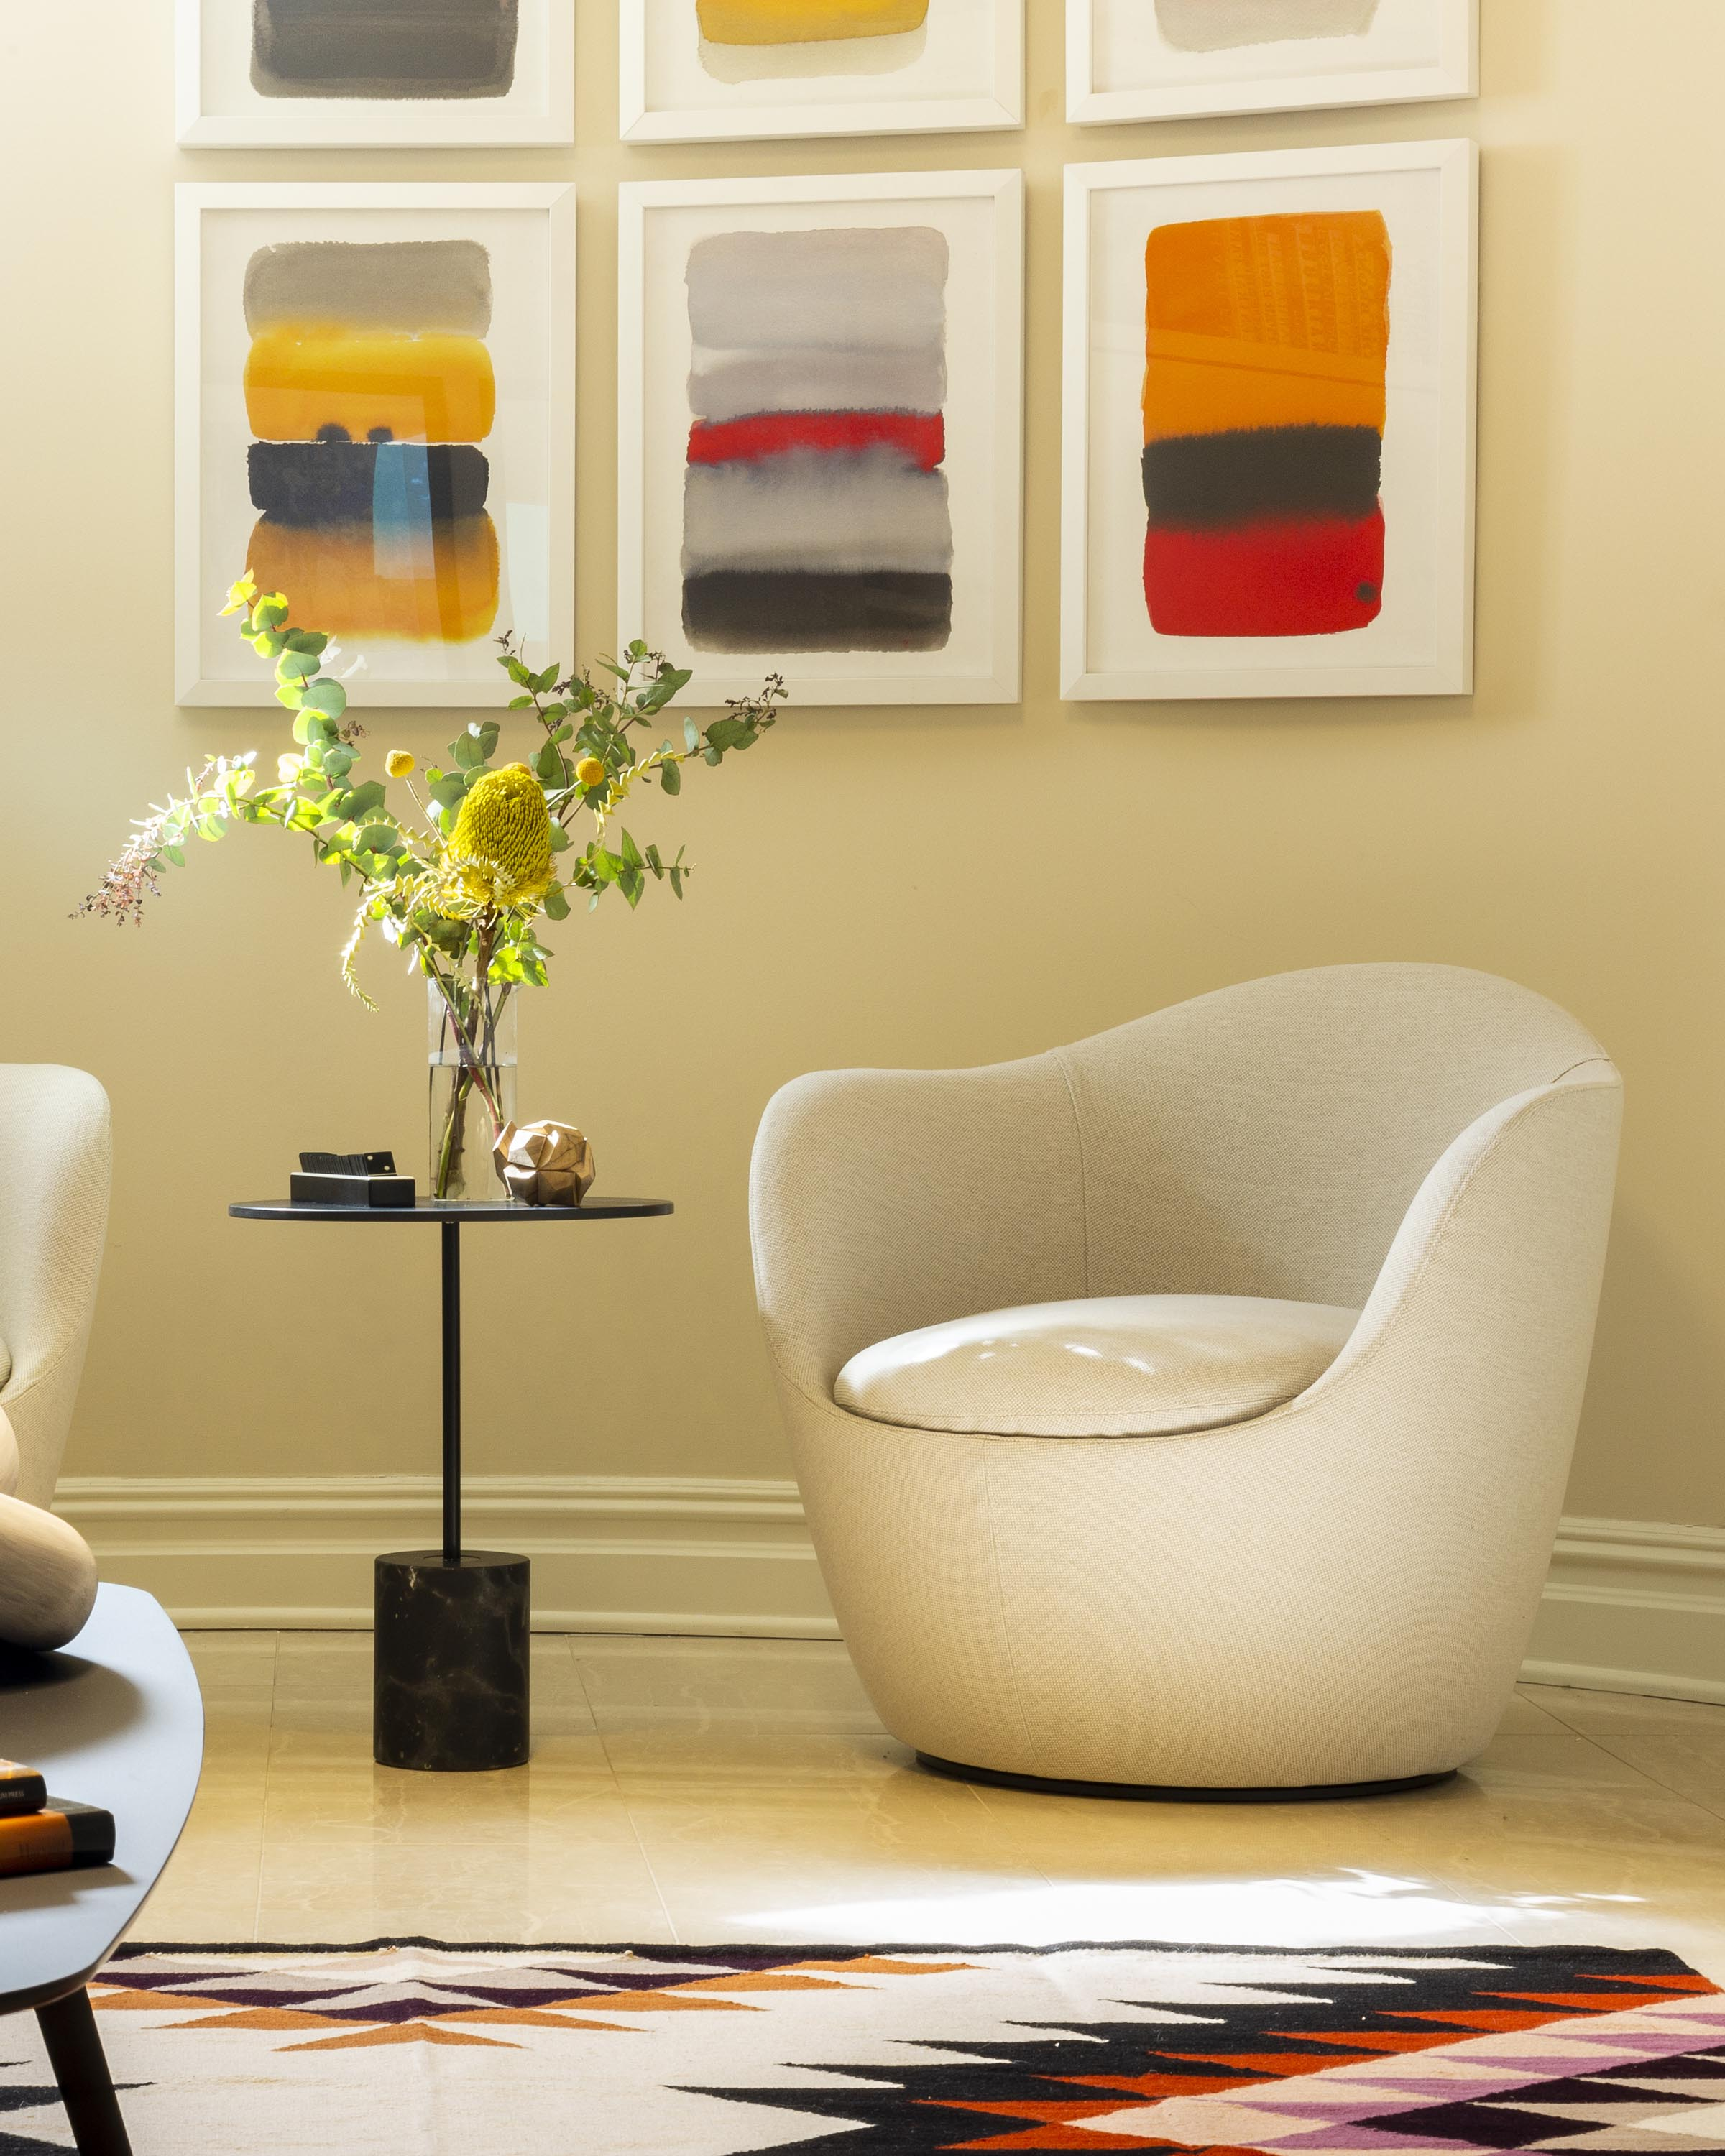 A room with a round table, flowers on a clear glass, armchair and artwork on the wall